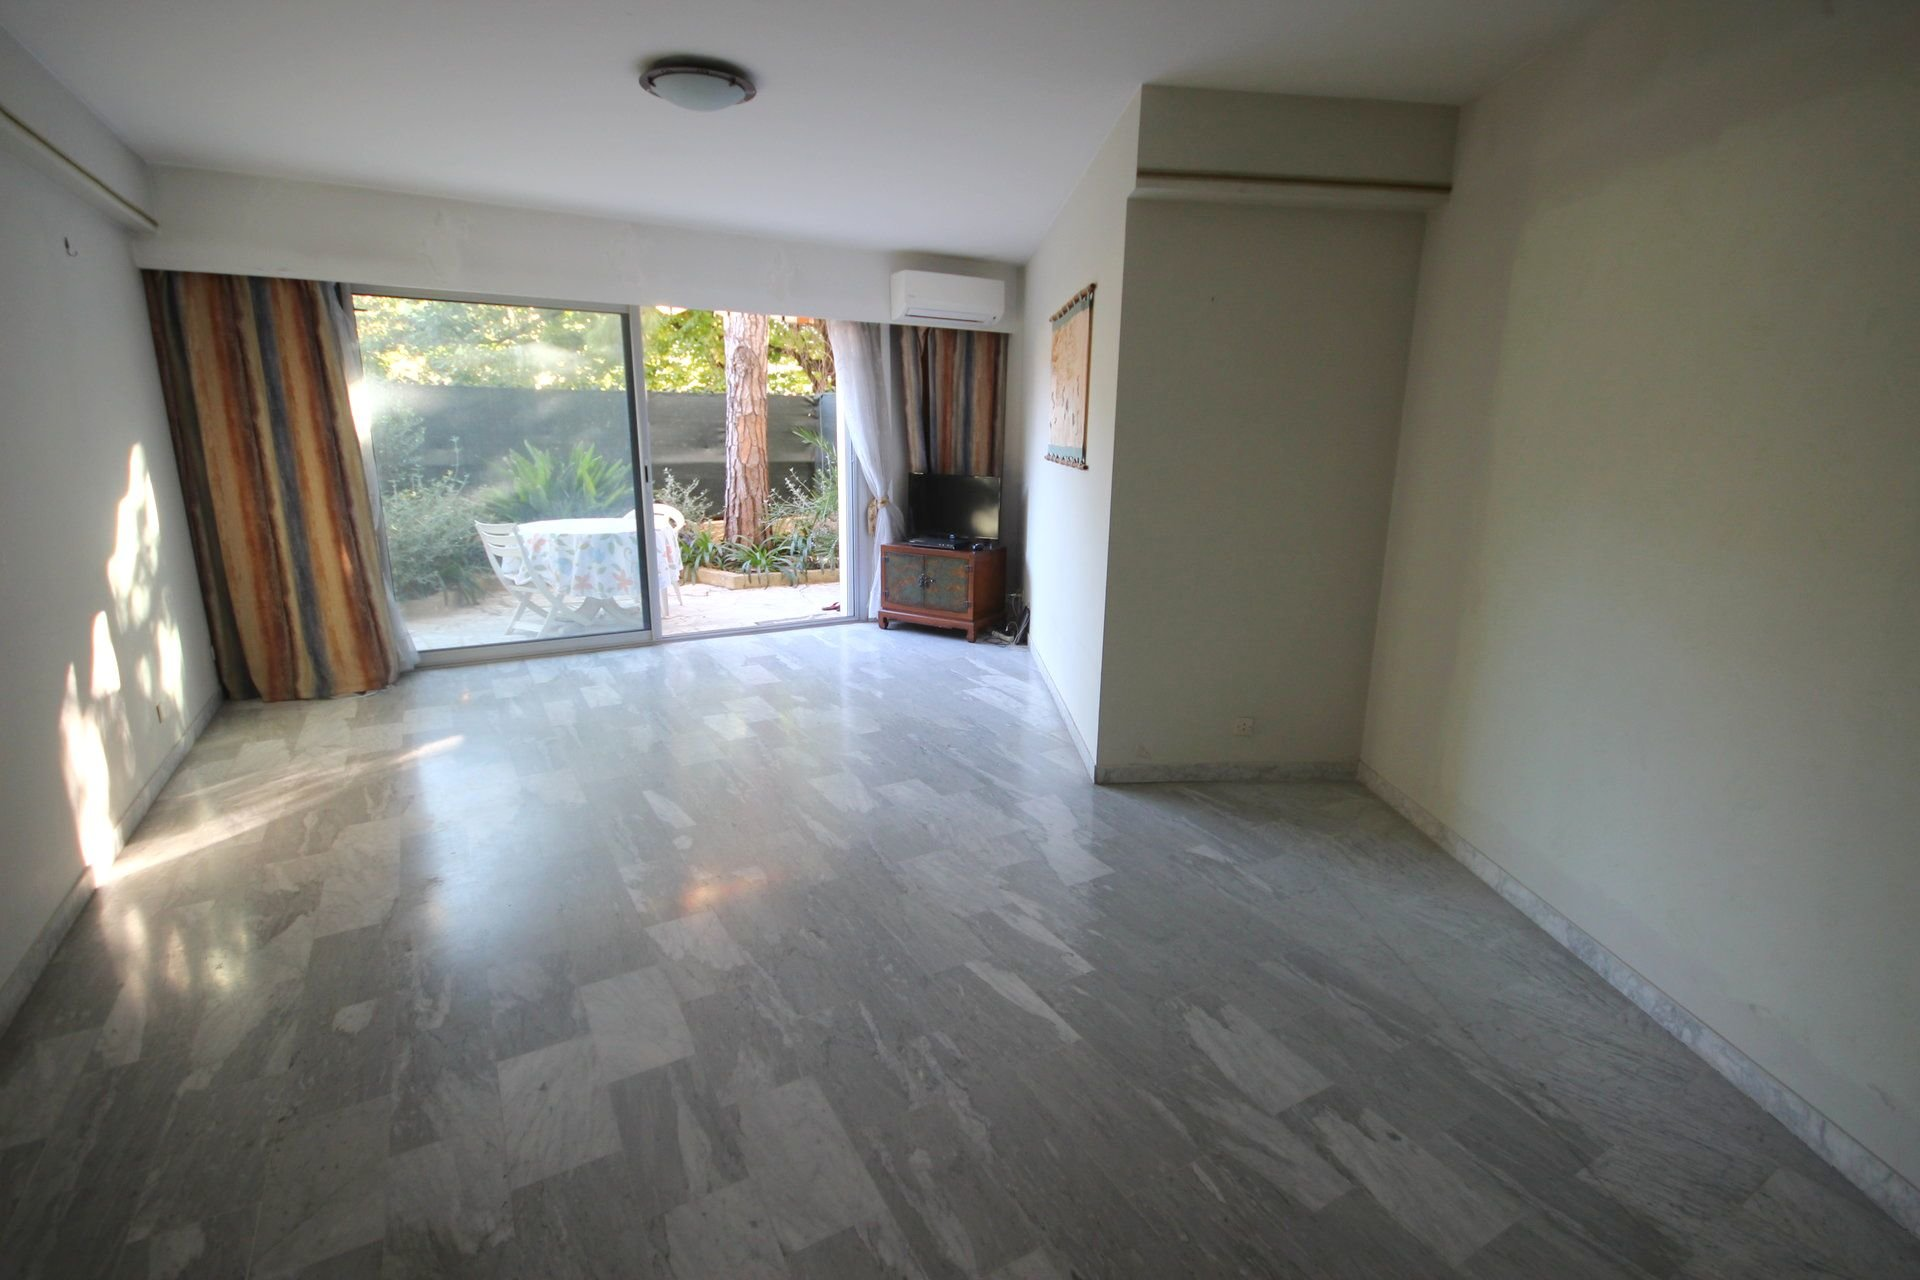 SALE 3 ROOMS NEAR SHOPS TO RENOVATE